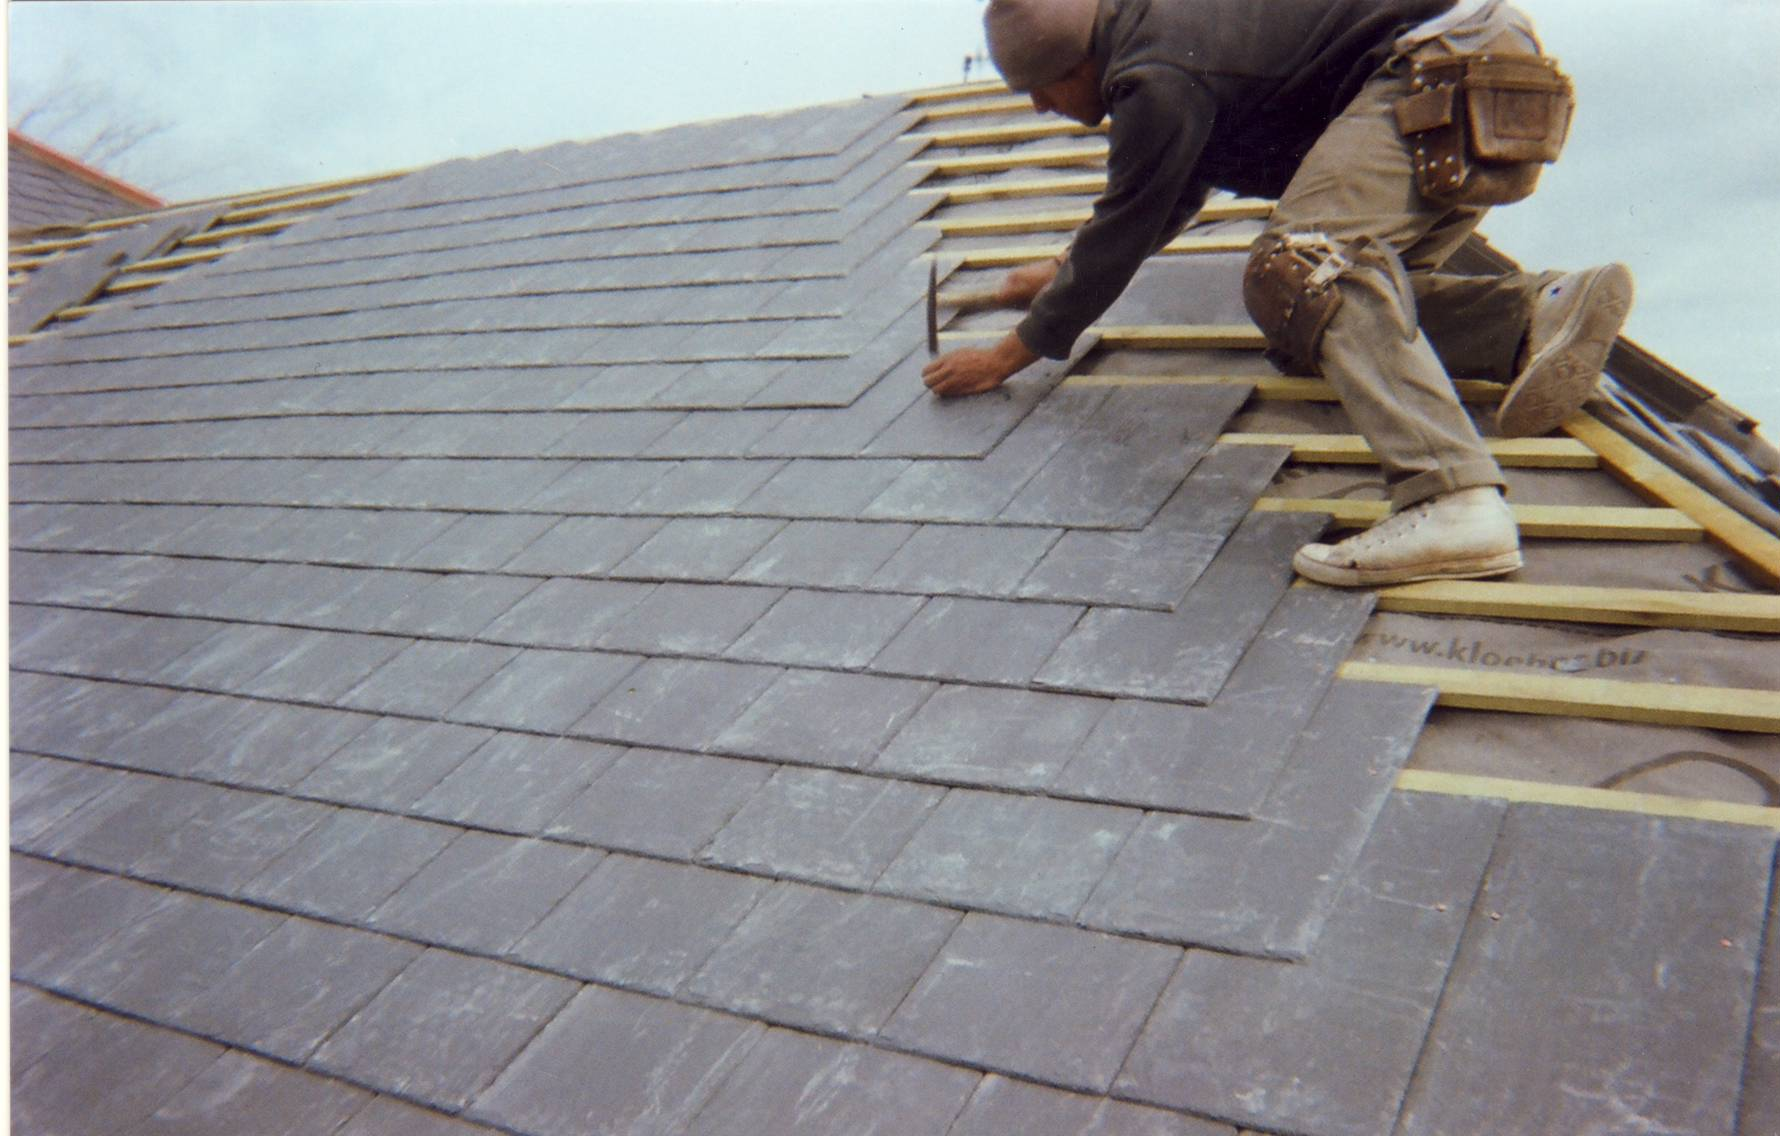 247 Roofing Contractors Near Me